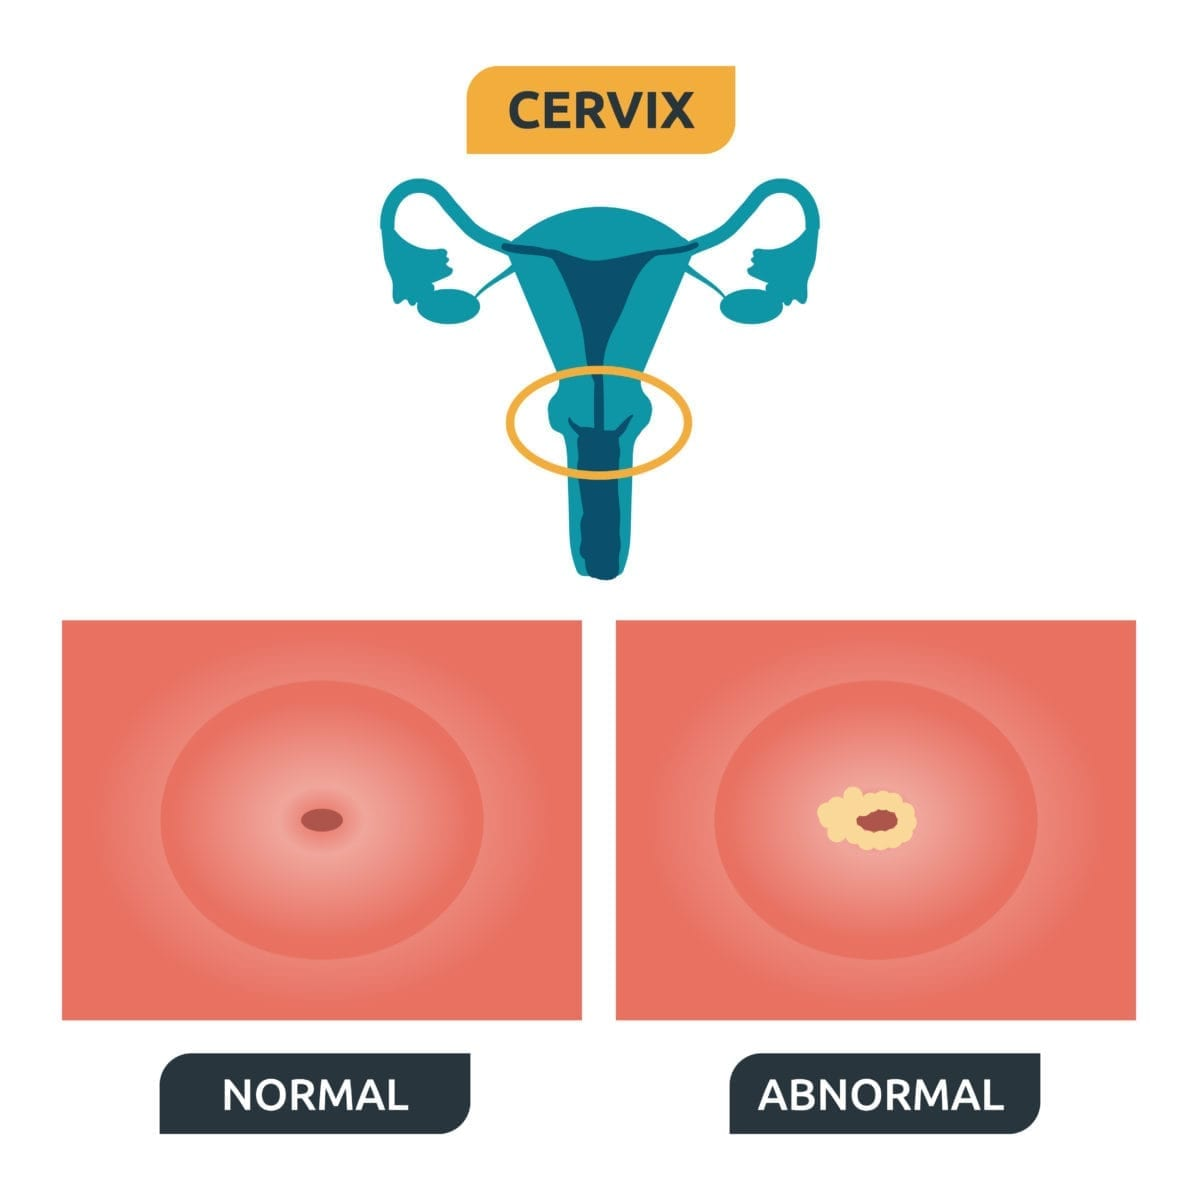 does precancerous cells mean hpv)